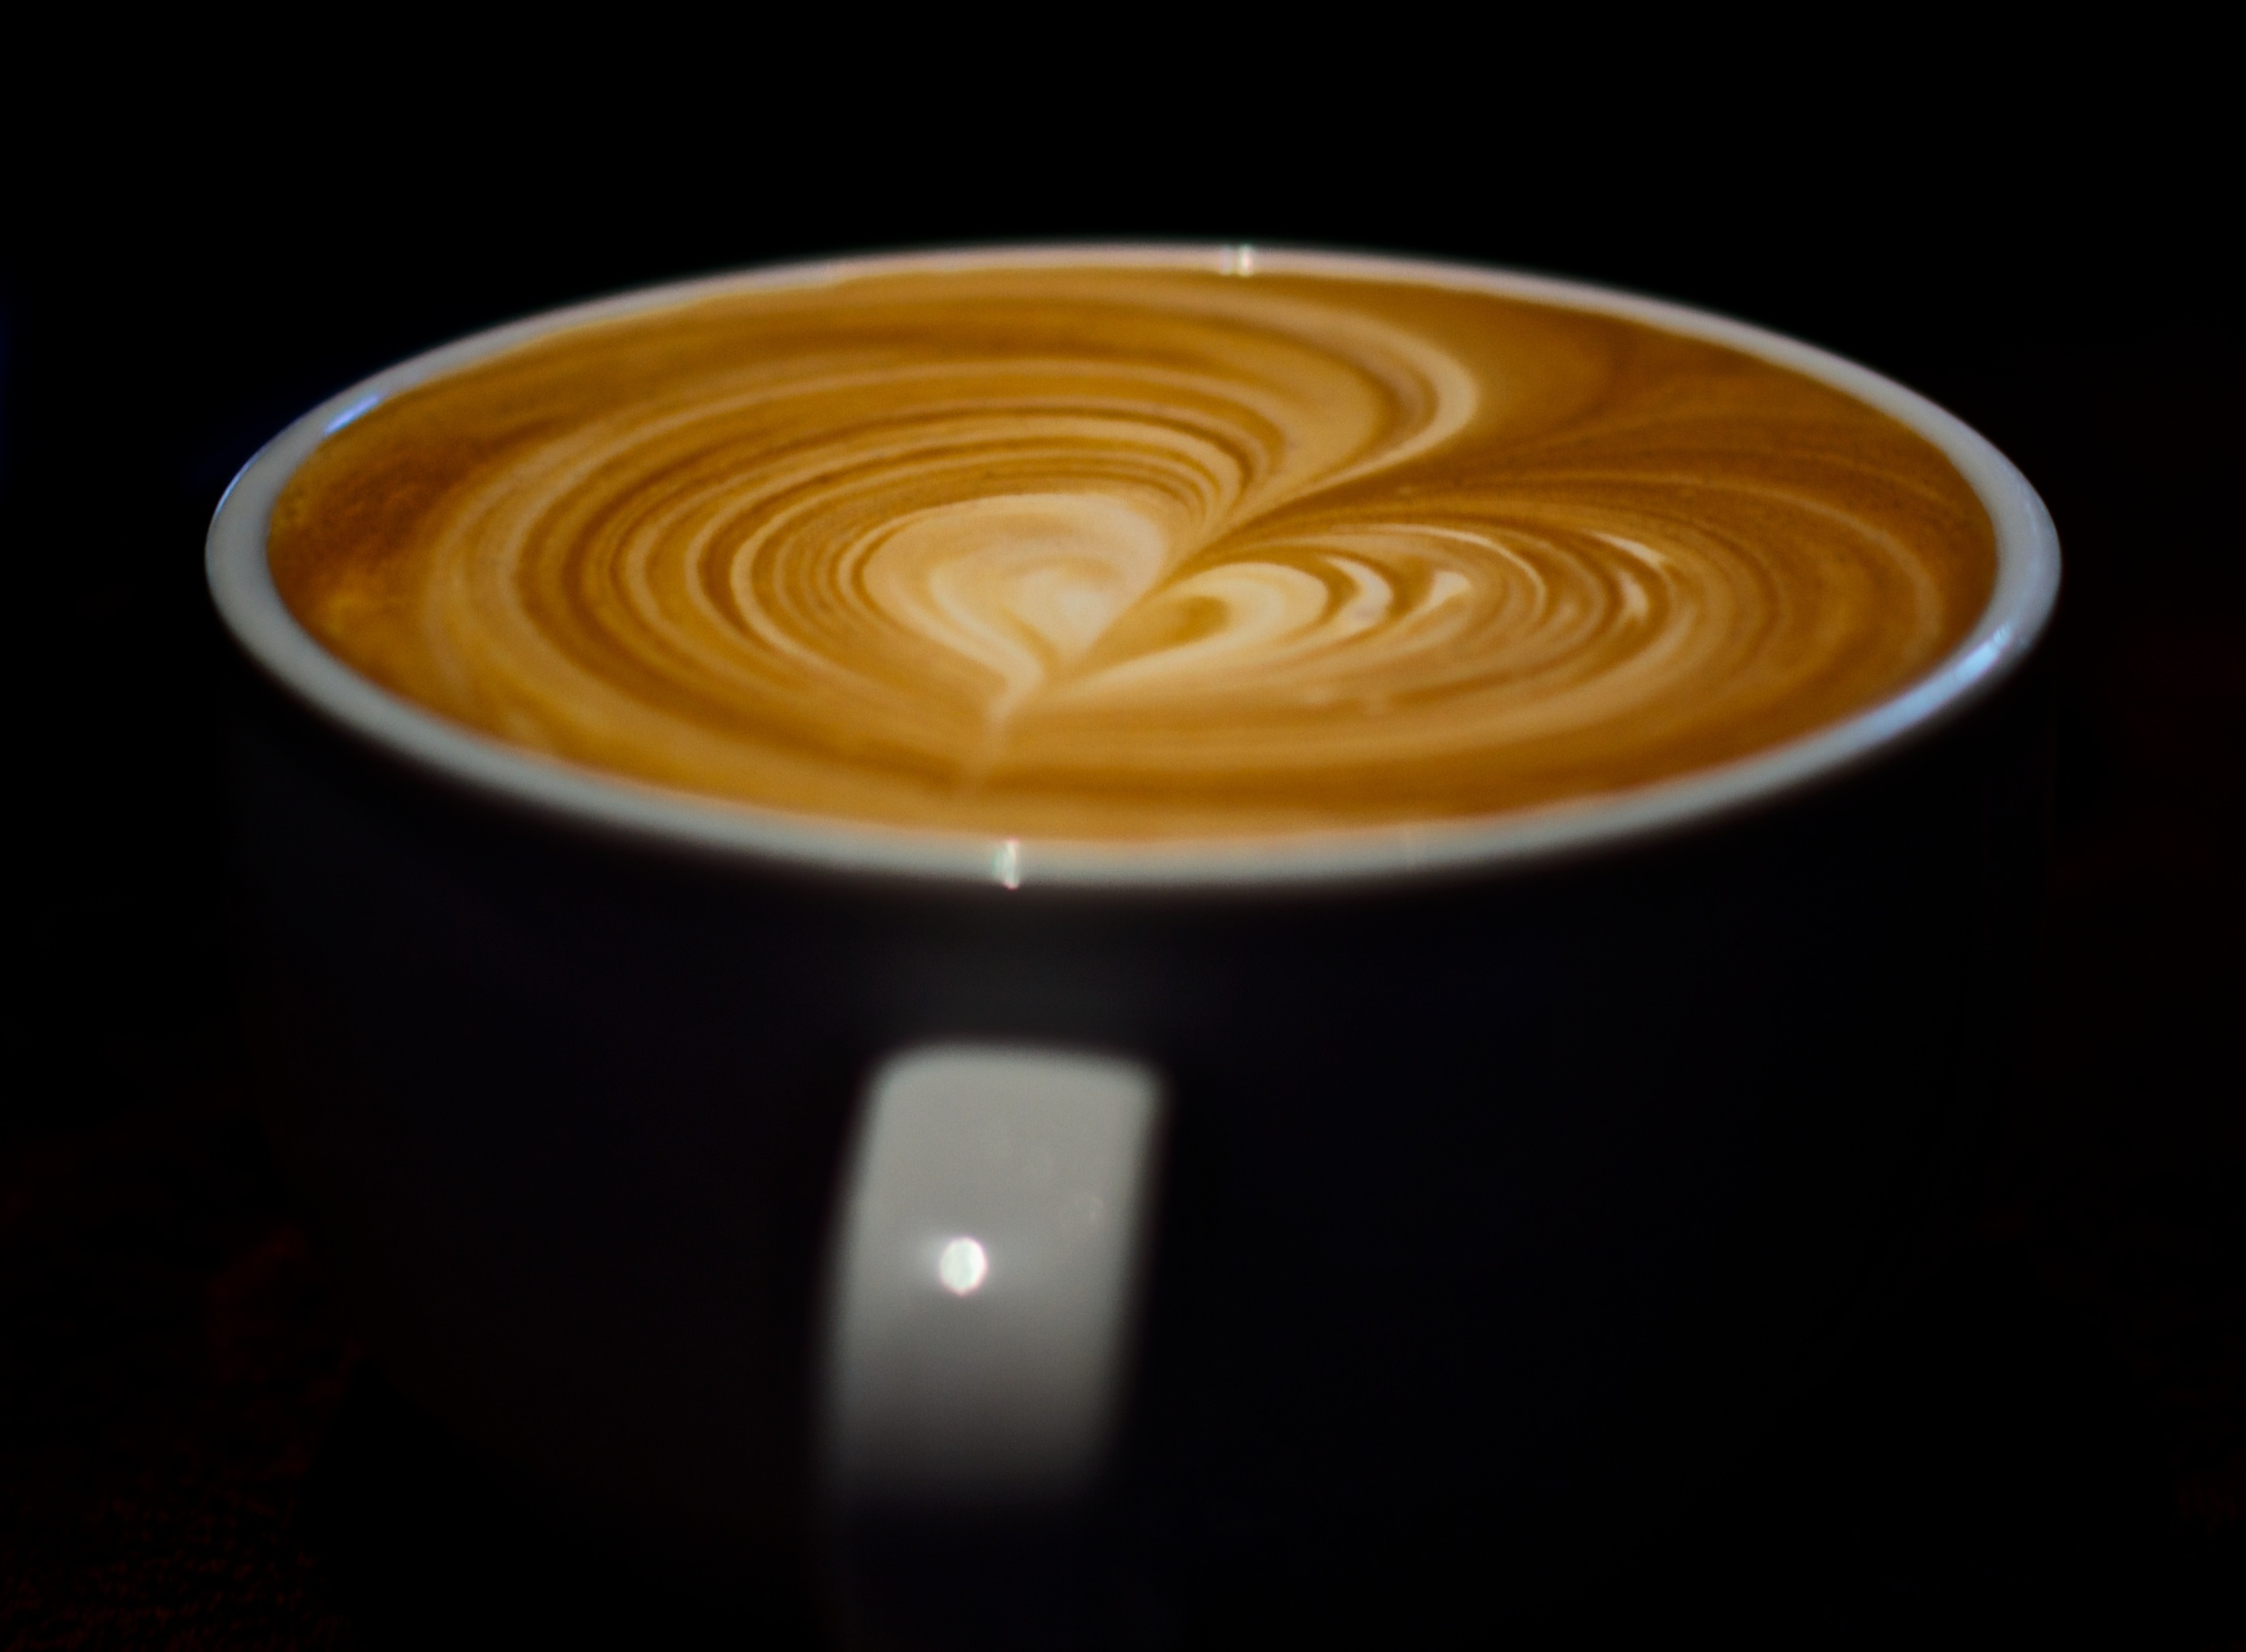 A beautiful pour of espresso floats ethereal in the darkness. Canon EOS 7D EF 50mm at f/2.2 1/100 ISO 100